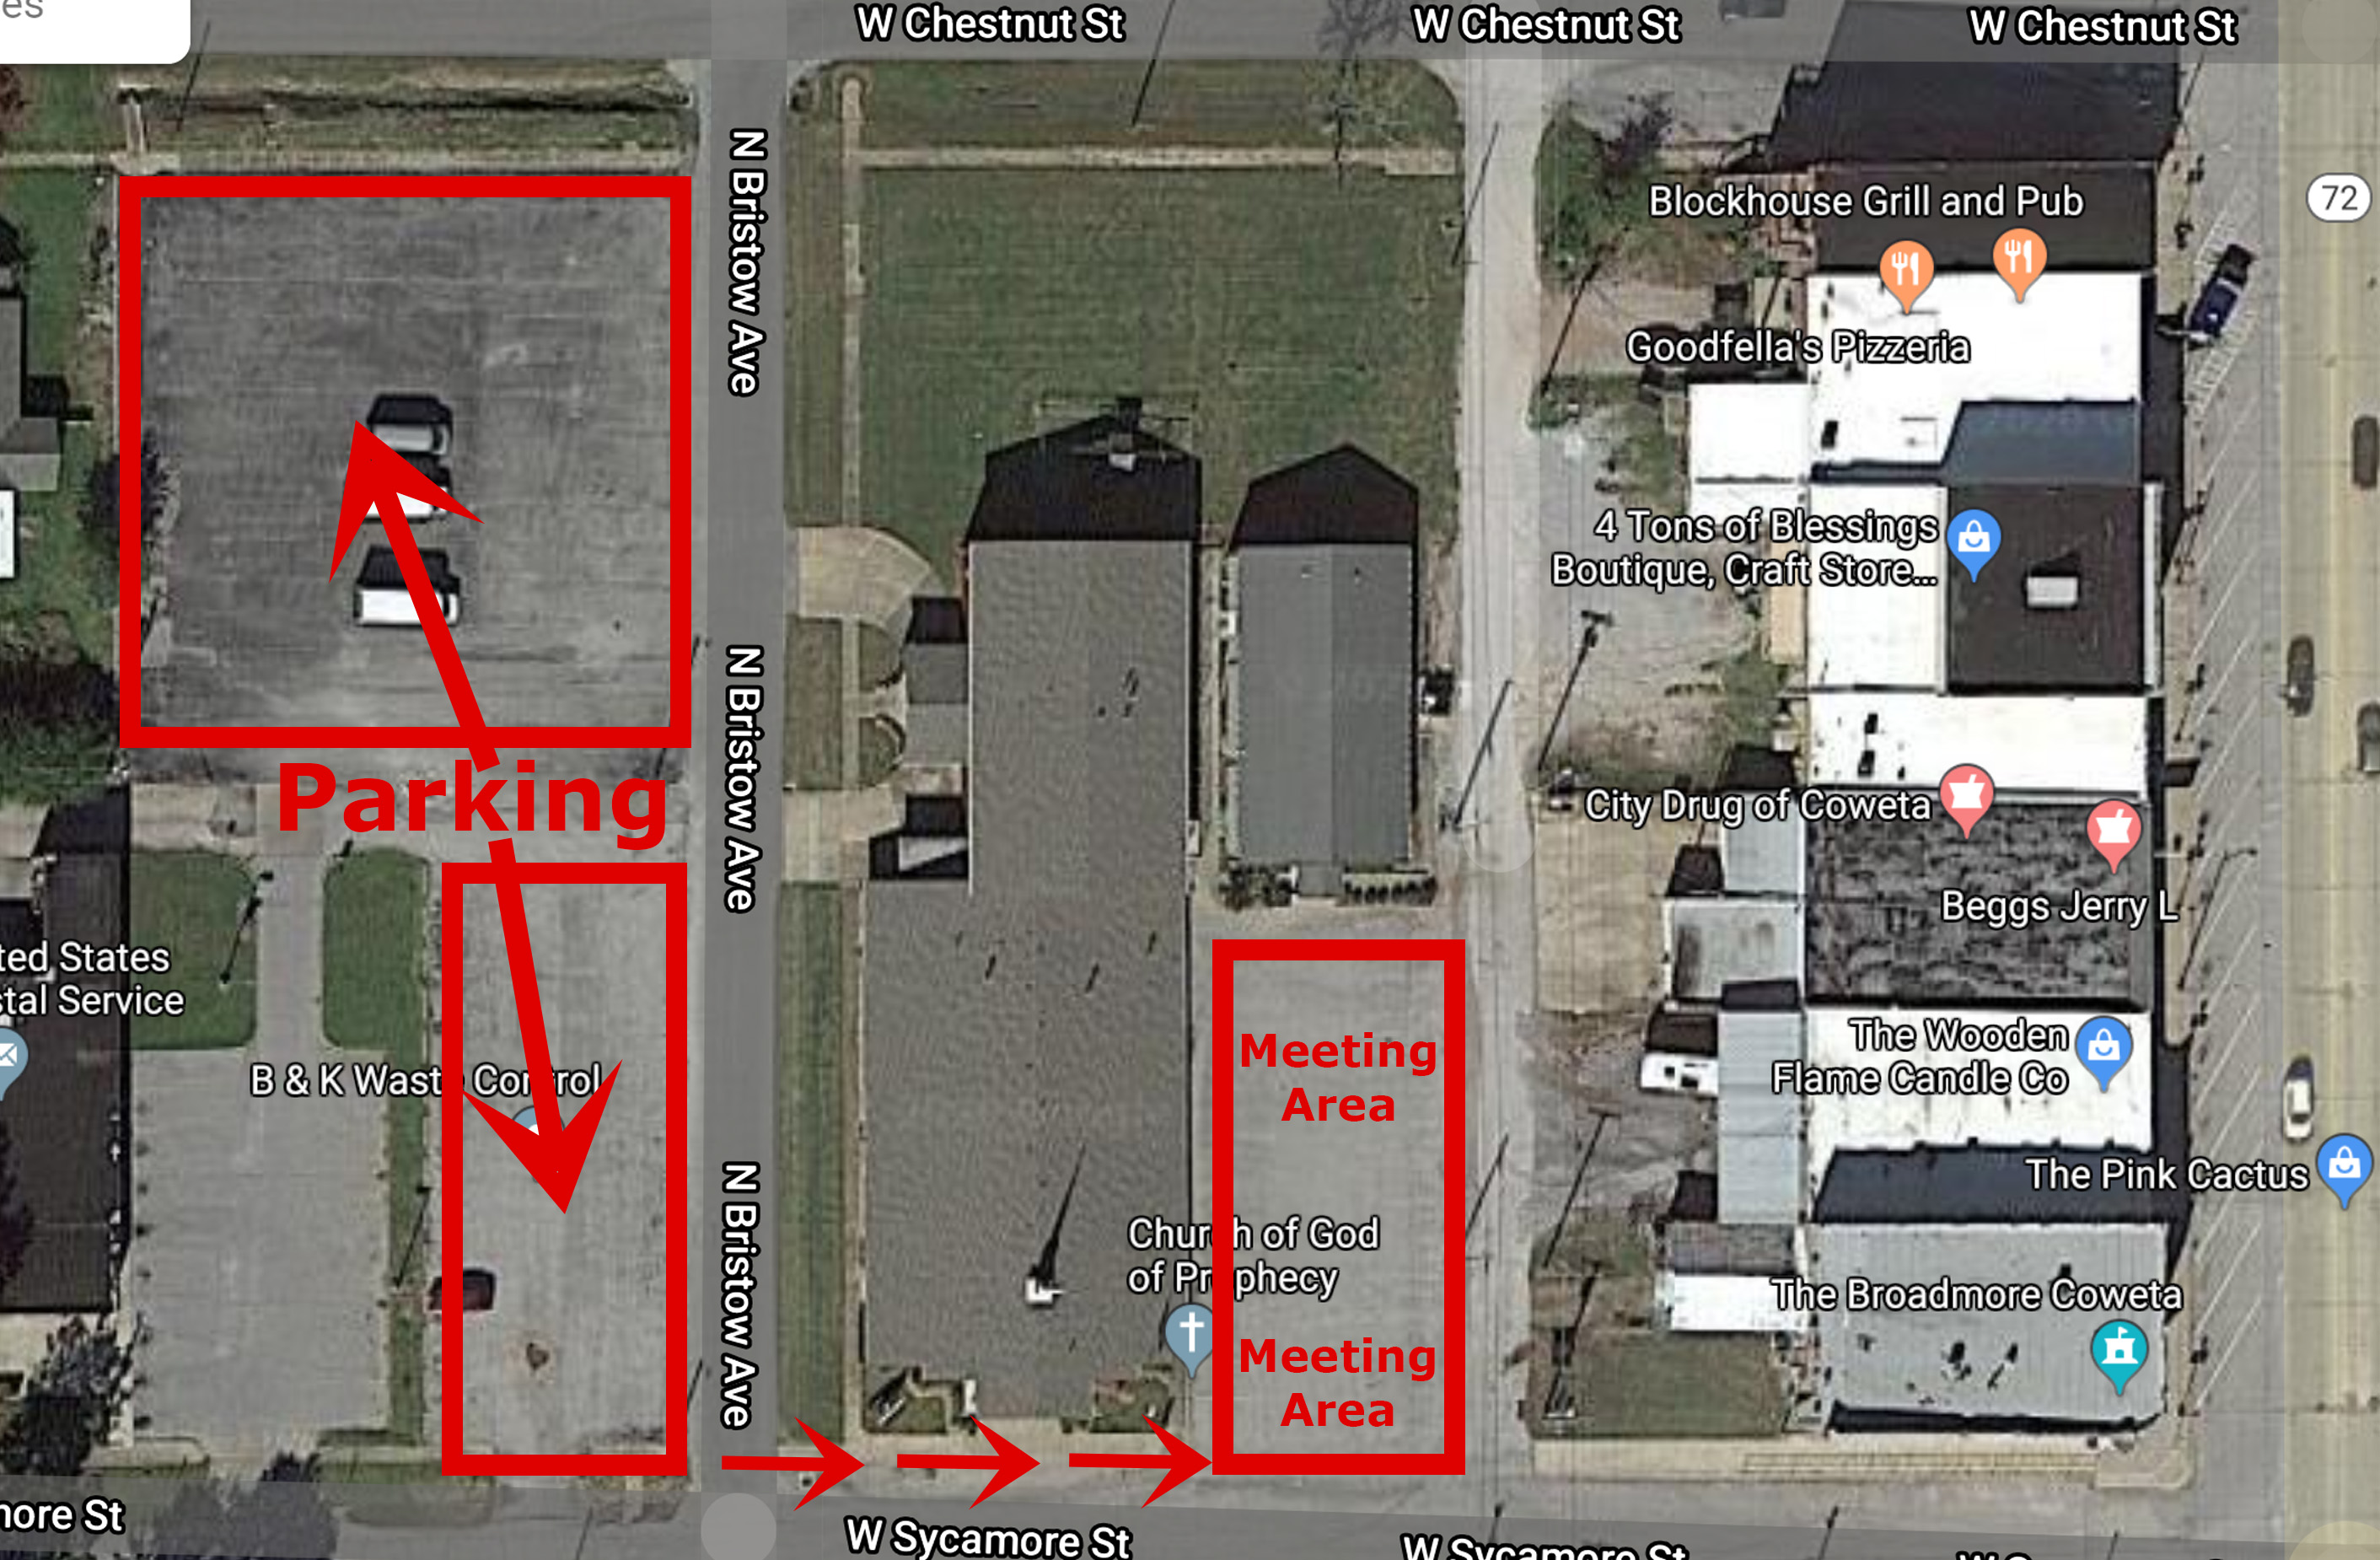 Church Map for Meeting in Parking Lot